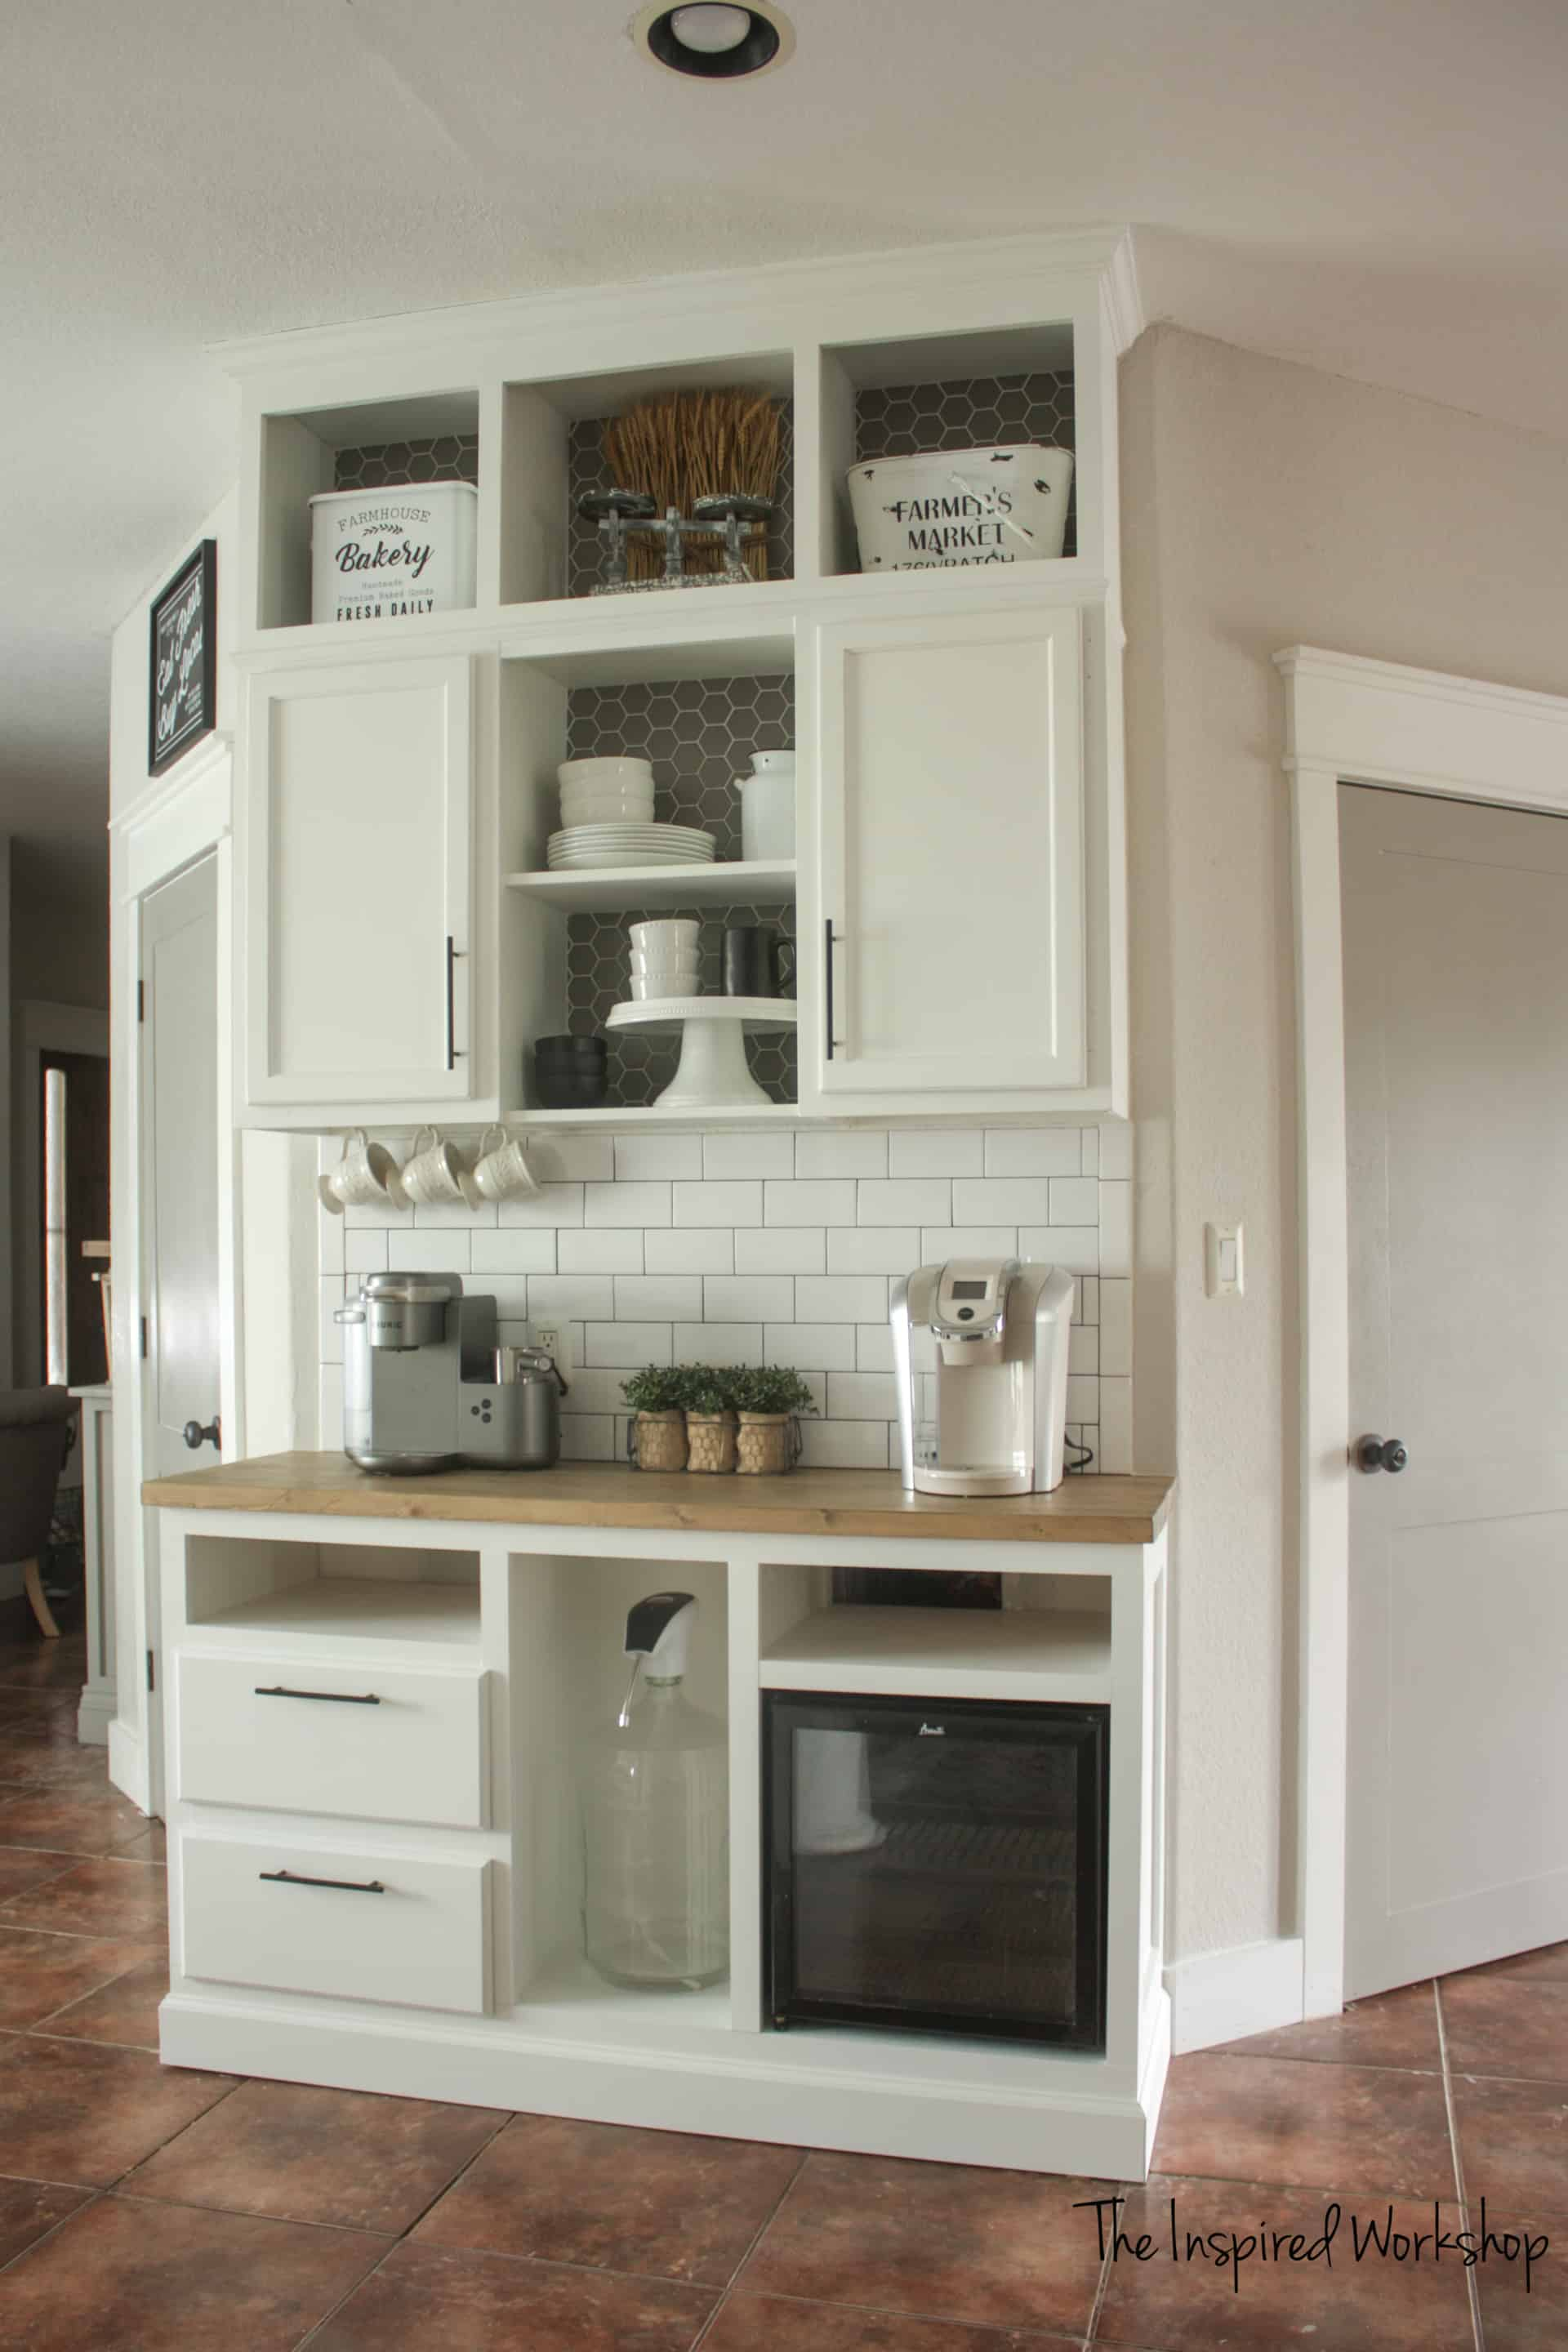 Should Kitchen Cabinets Go Up To Ceiling Extending The Kitchen Cabinets And Building Out The Peninsula